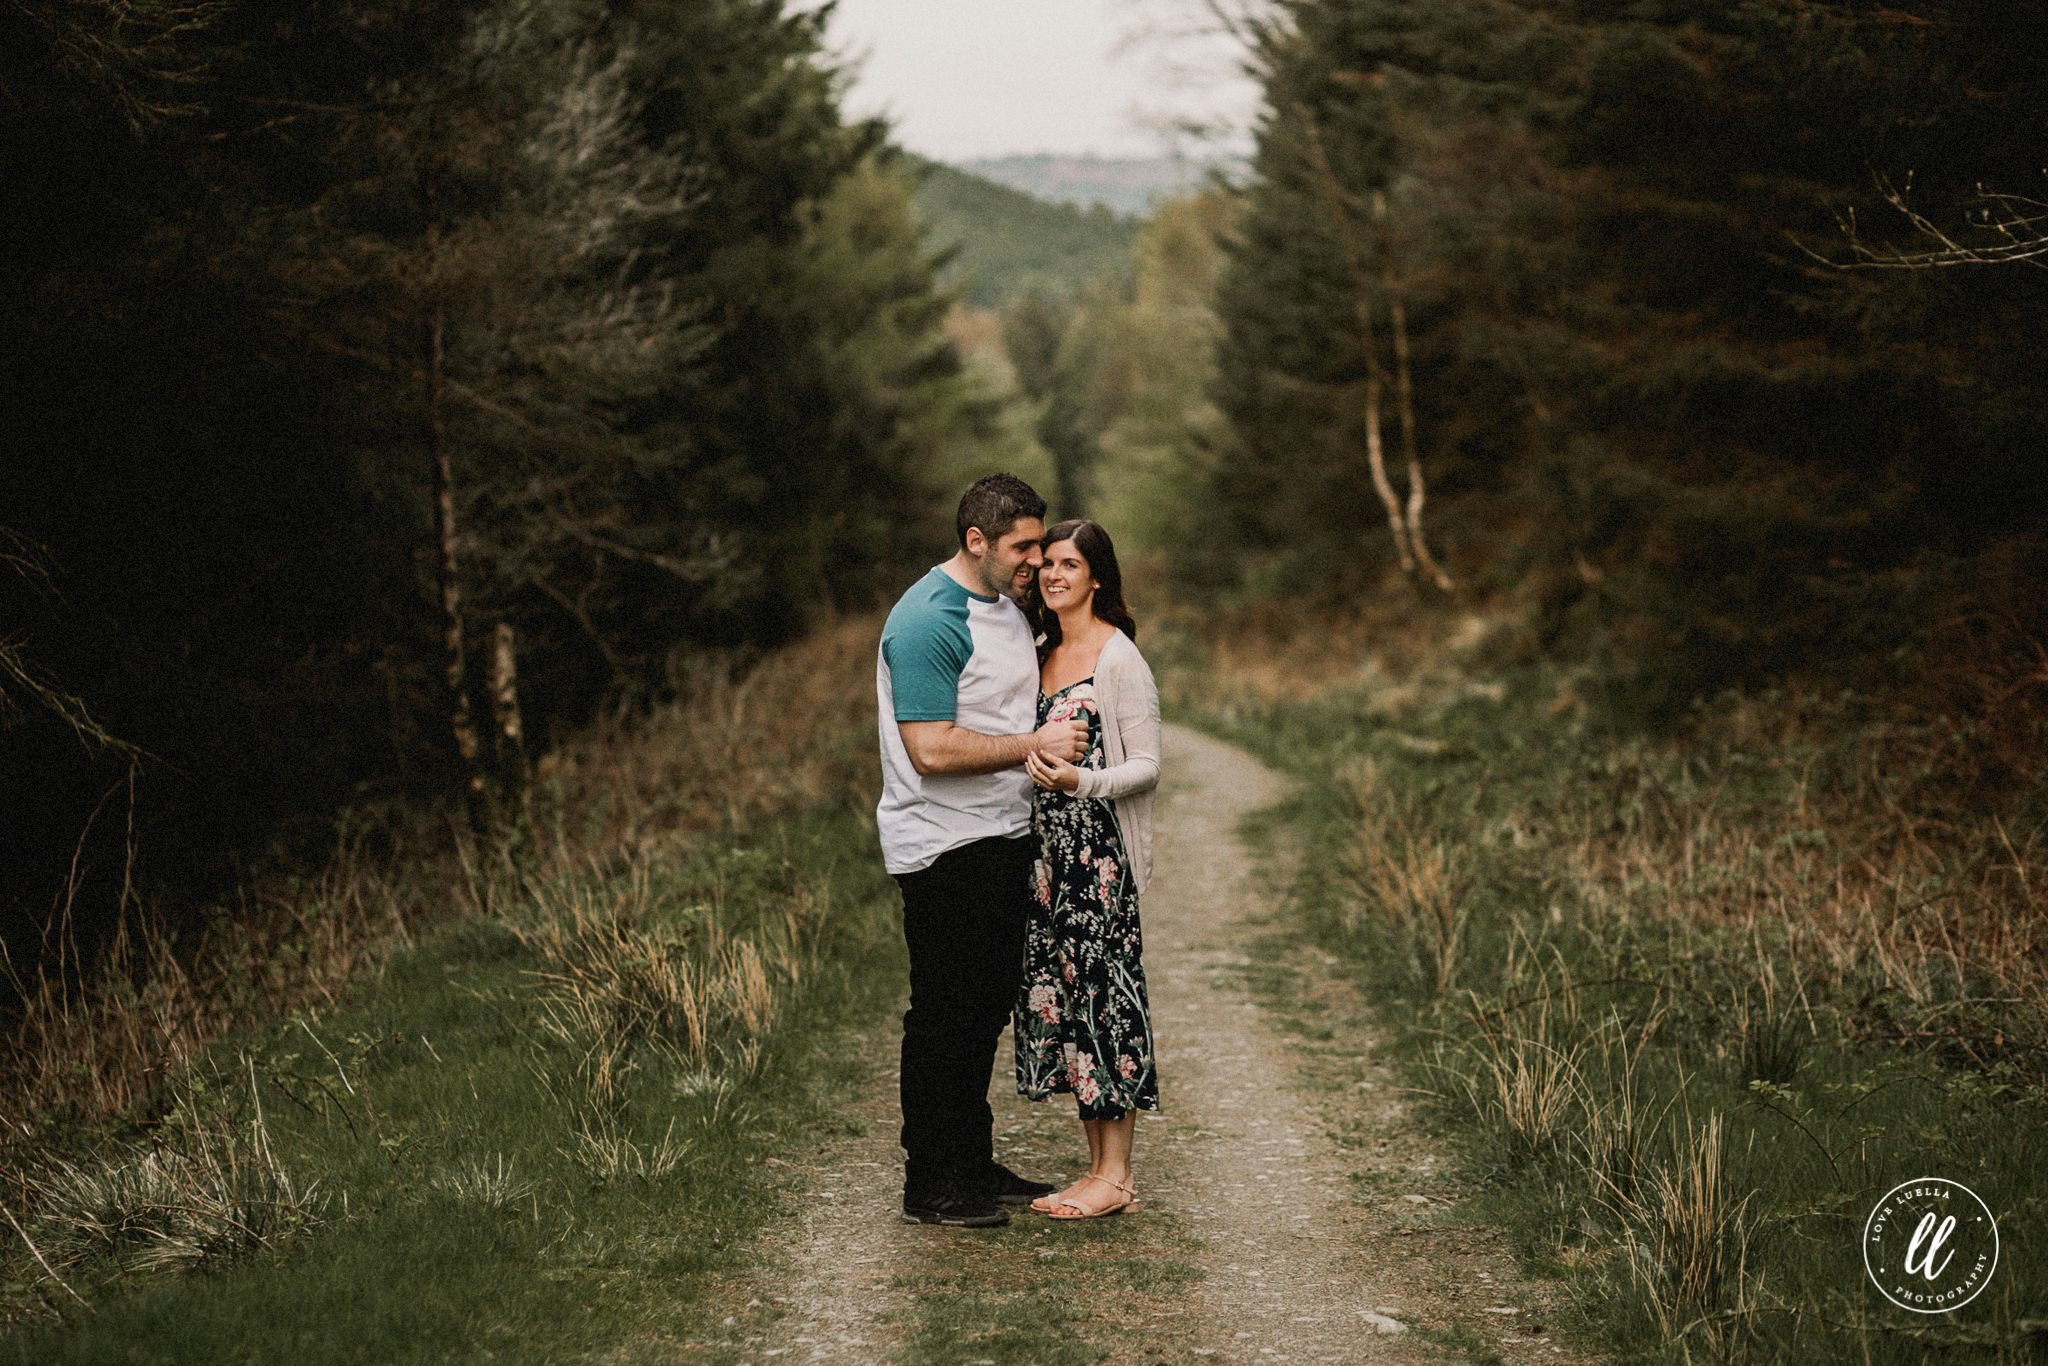 Cheshire Wedding Photographer - Lois and Elgan - Delamere-5.jpg